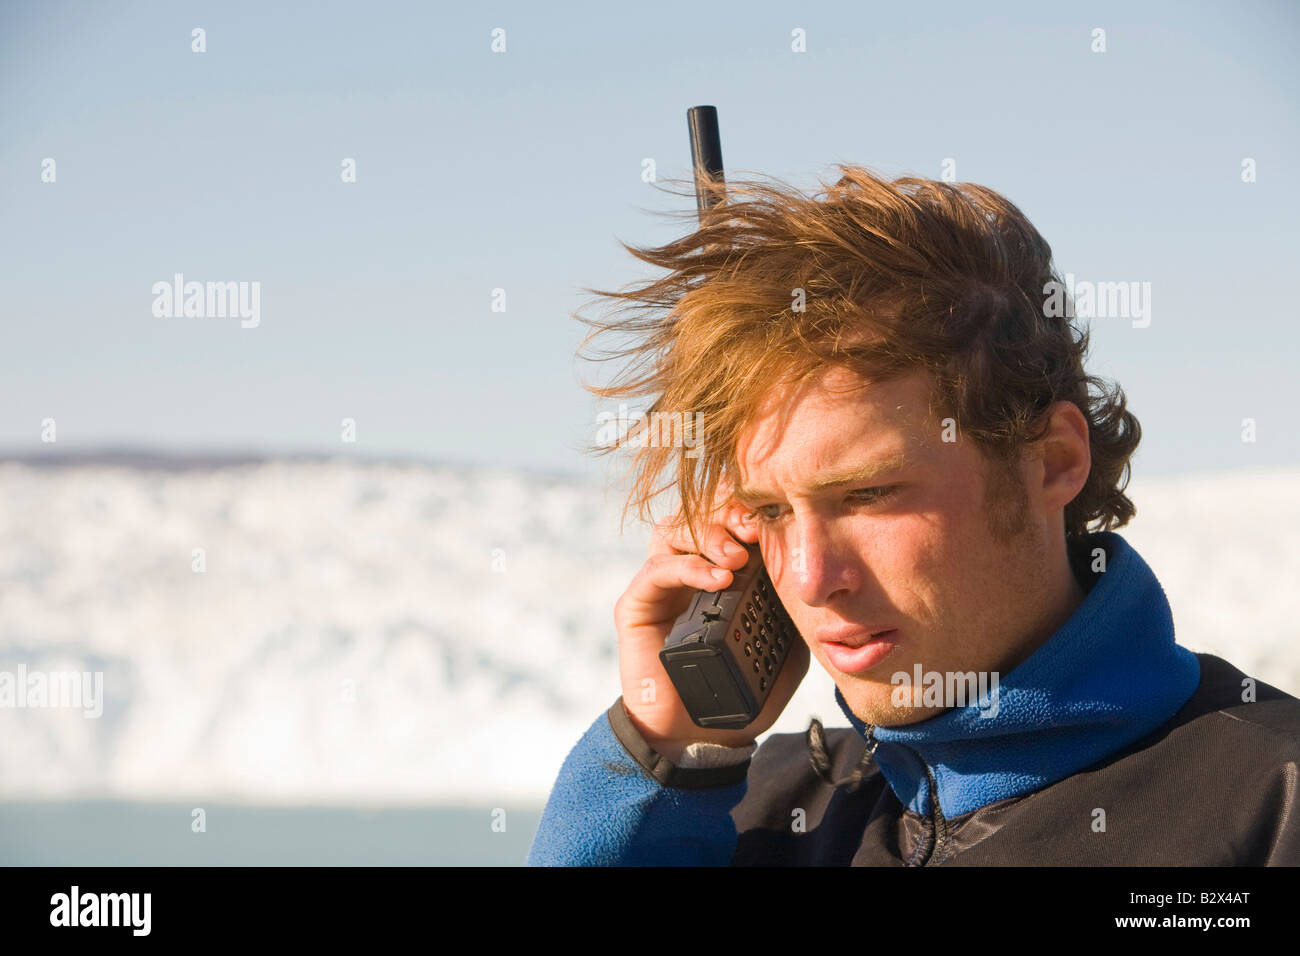 A Greenland tour guide using a satelite phone in a remote area at Camp Victor on Greenlands west coast - Stock Image